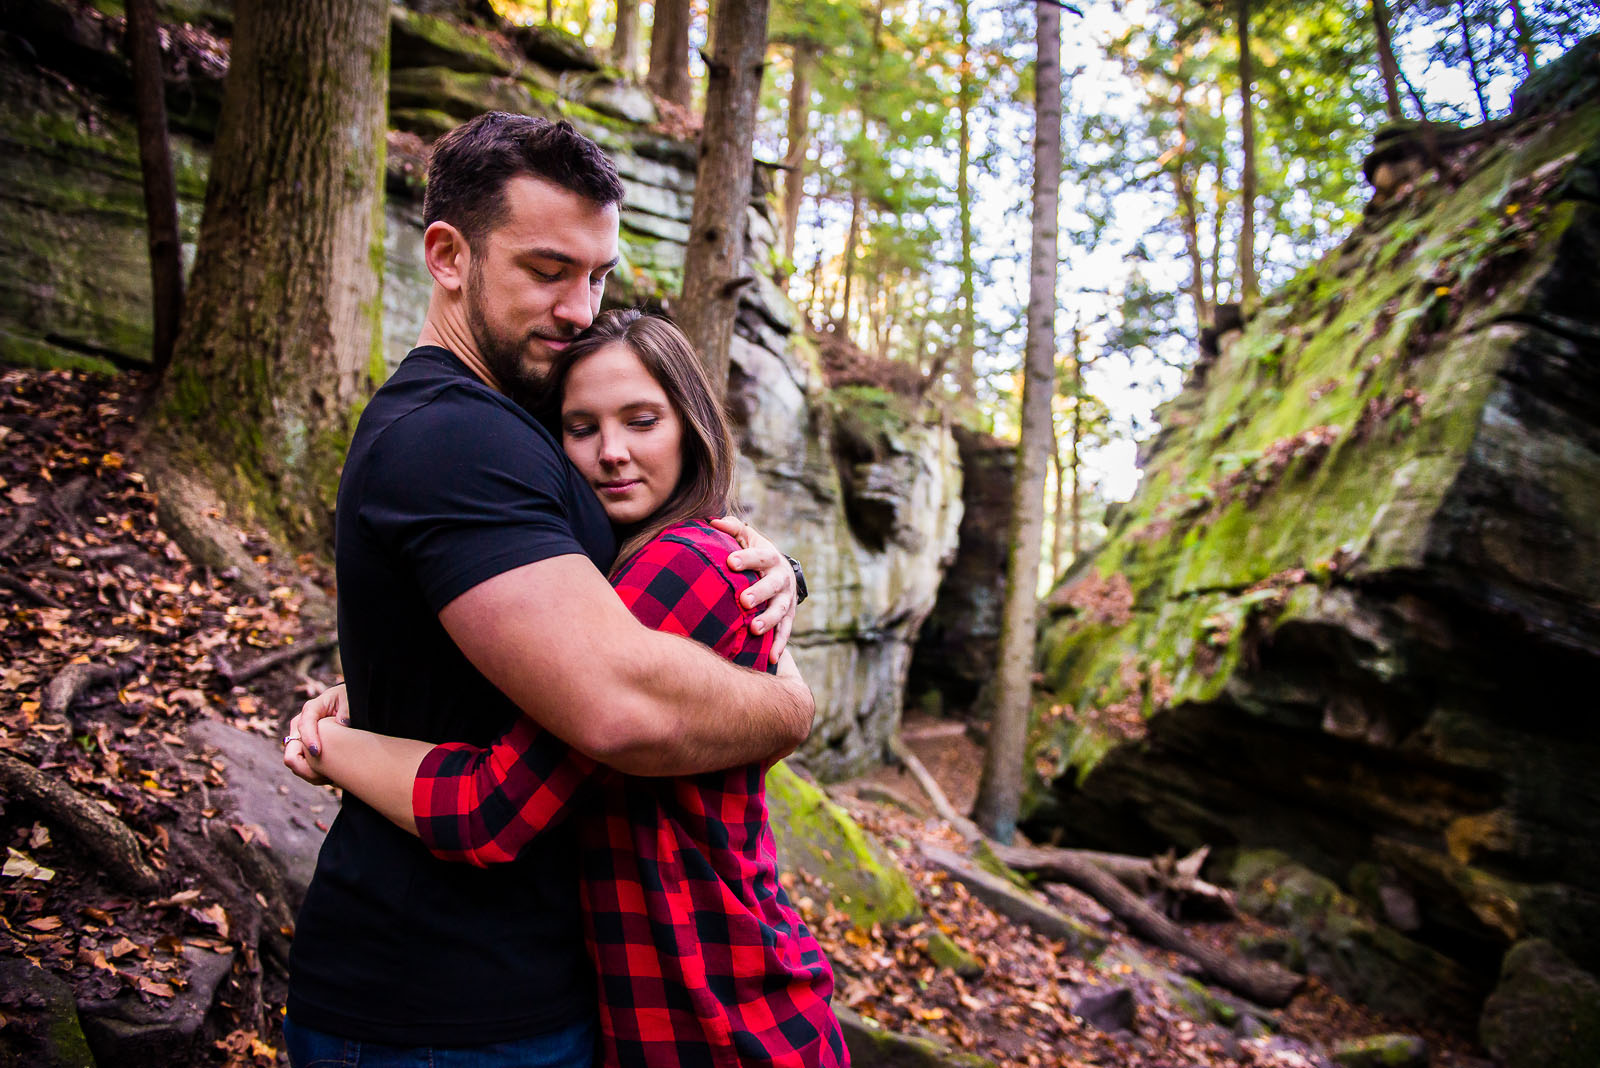 Eric_and_Christy_Photography_Blog_Stephanie_Nick_Engagement-9